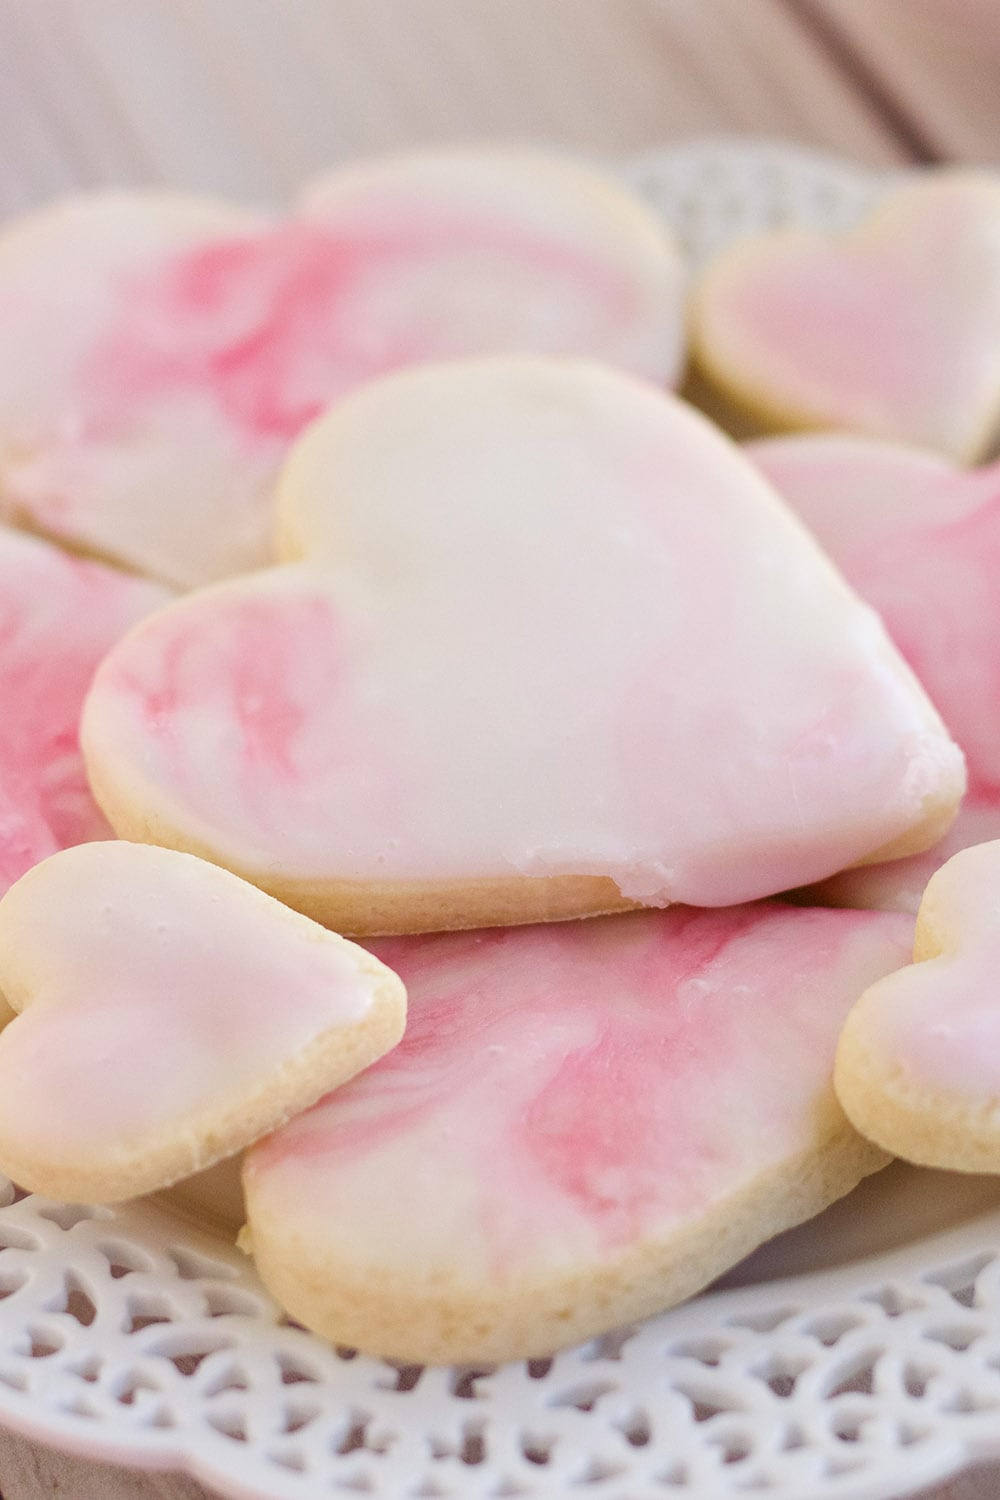 Pile of heart cookies with pink icing on a plate.